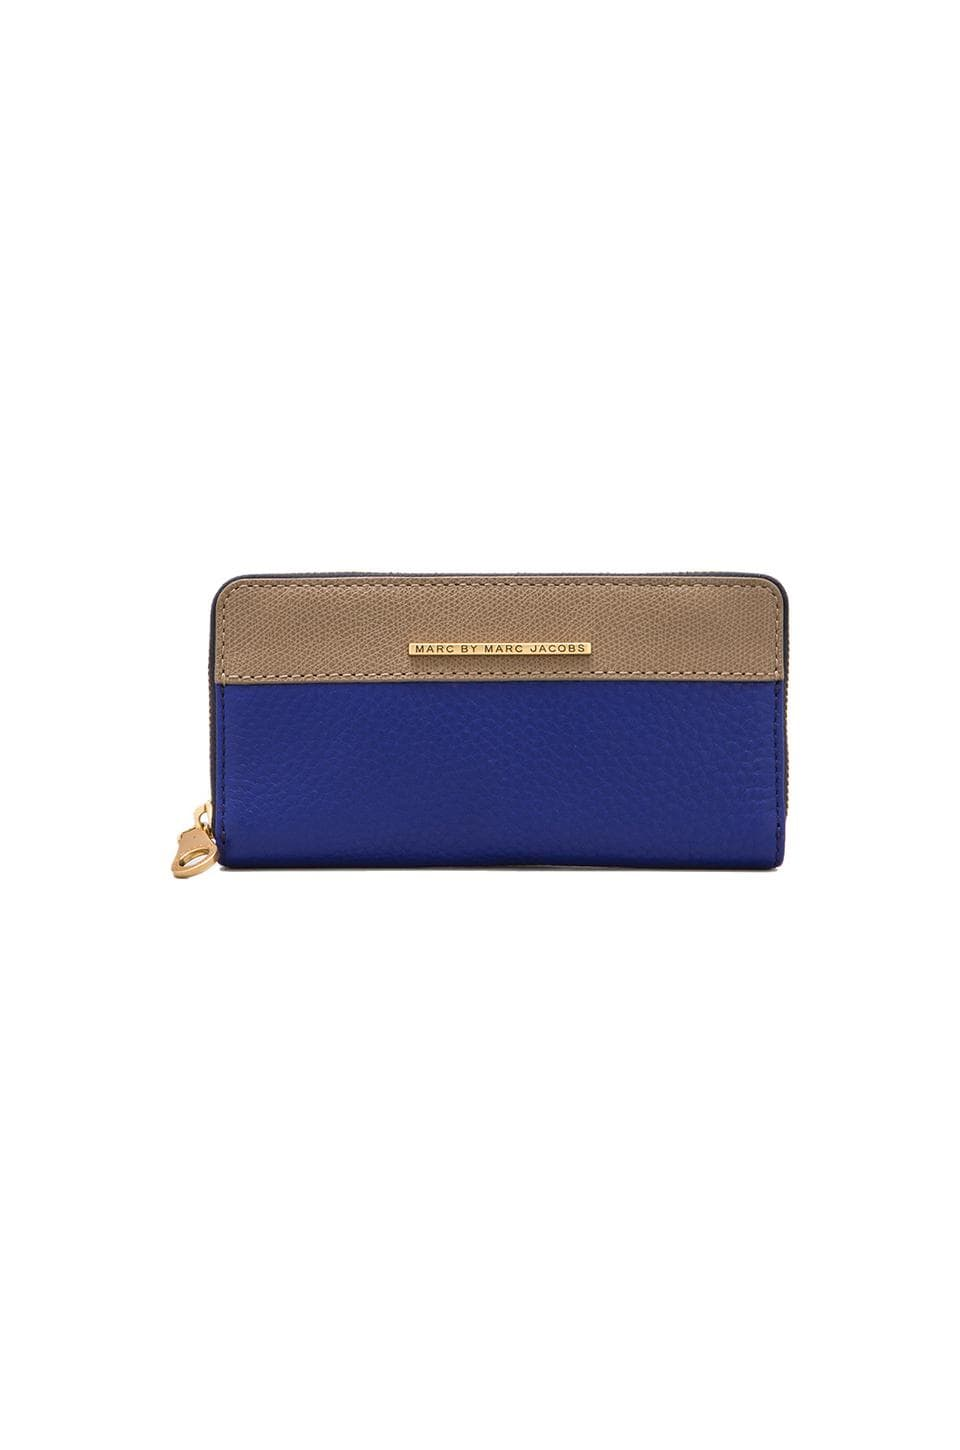 Marc by Marc Jacobs Sheltered Island Slim Zippy in Bright Royal Multi